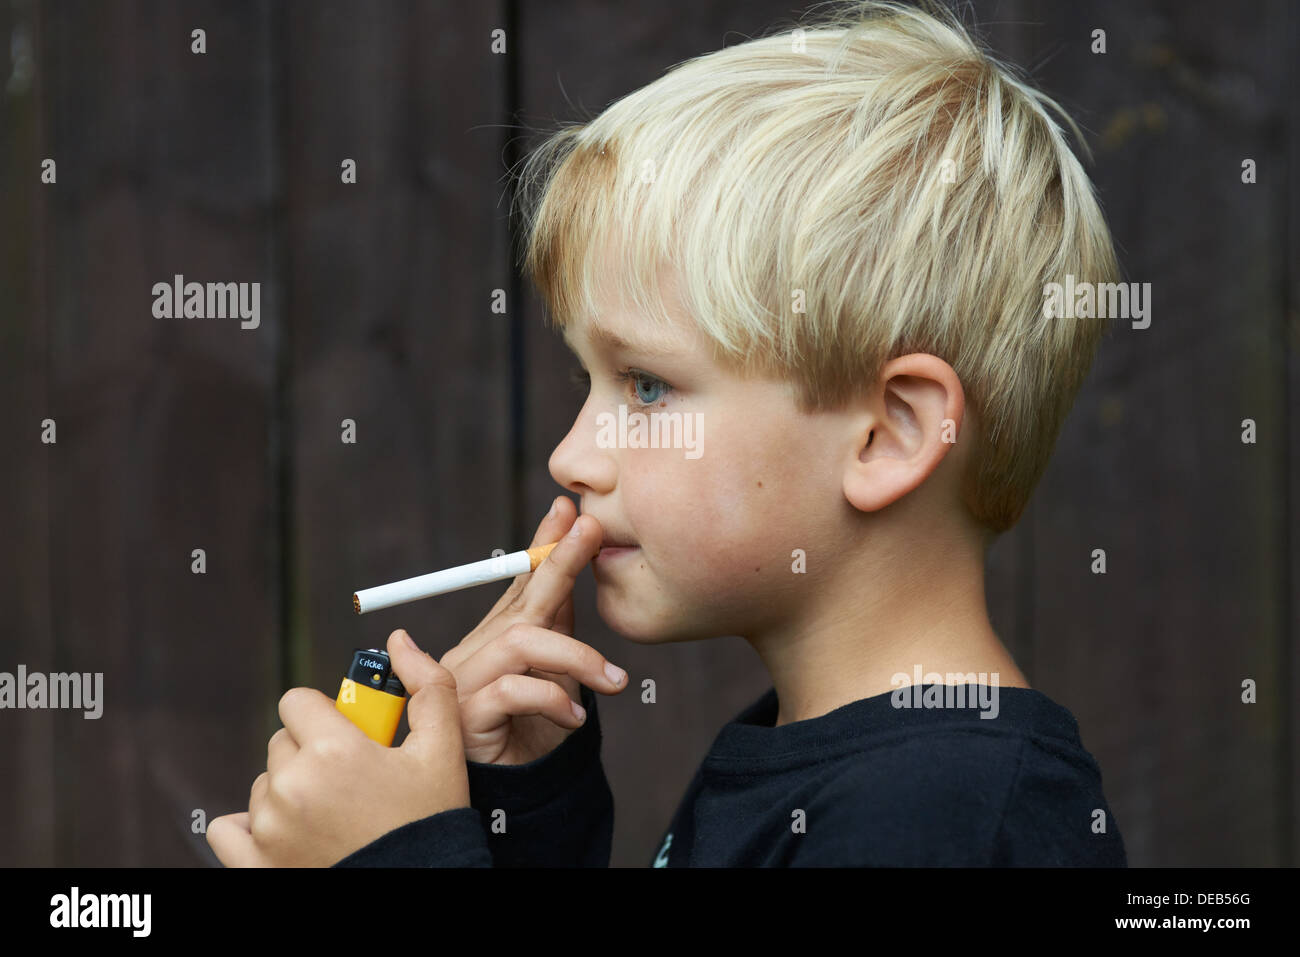 Child blond boy smoking cigarette young smoker stock image